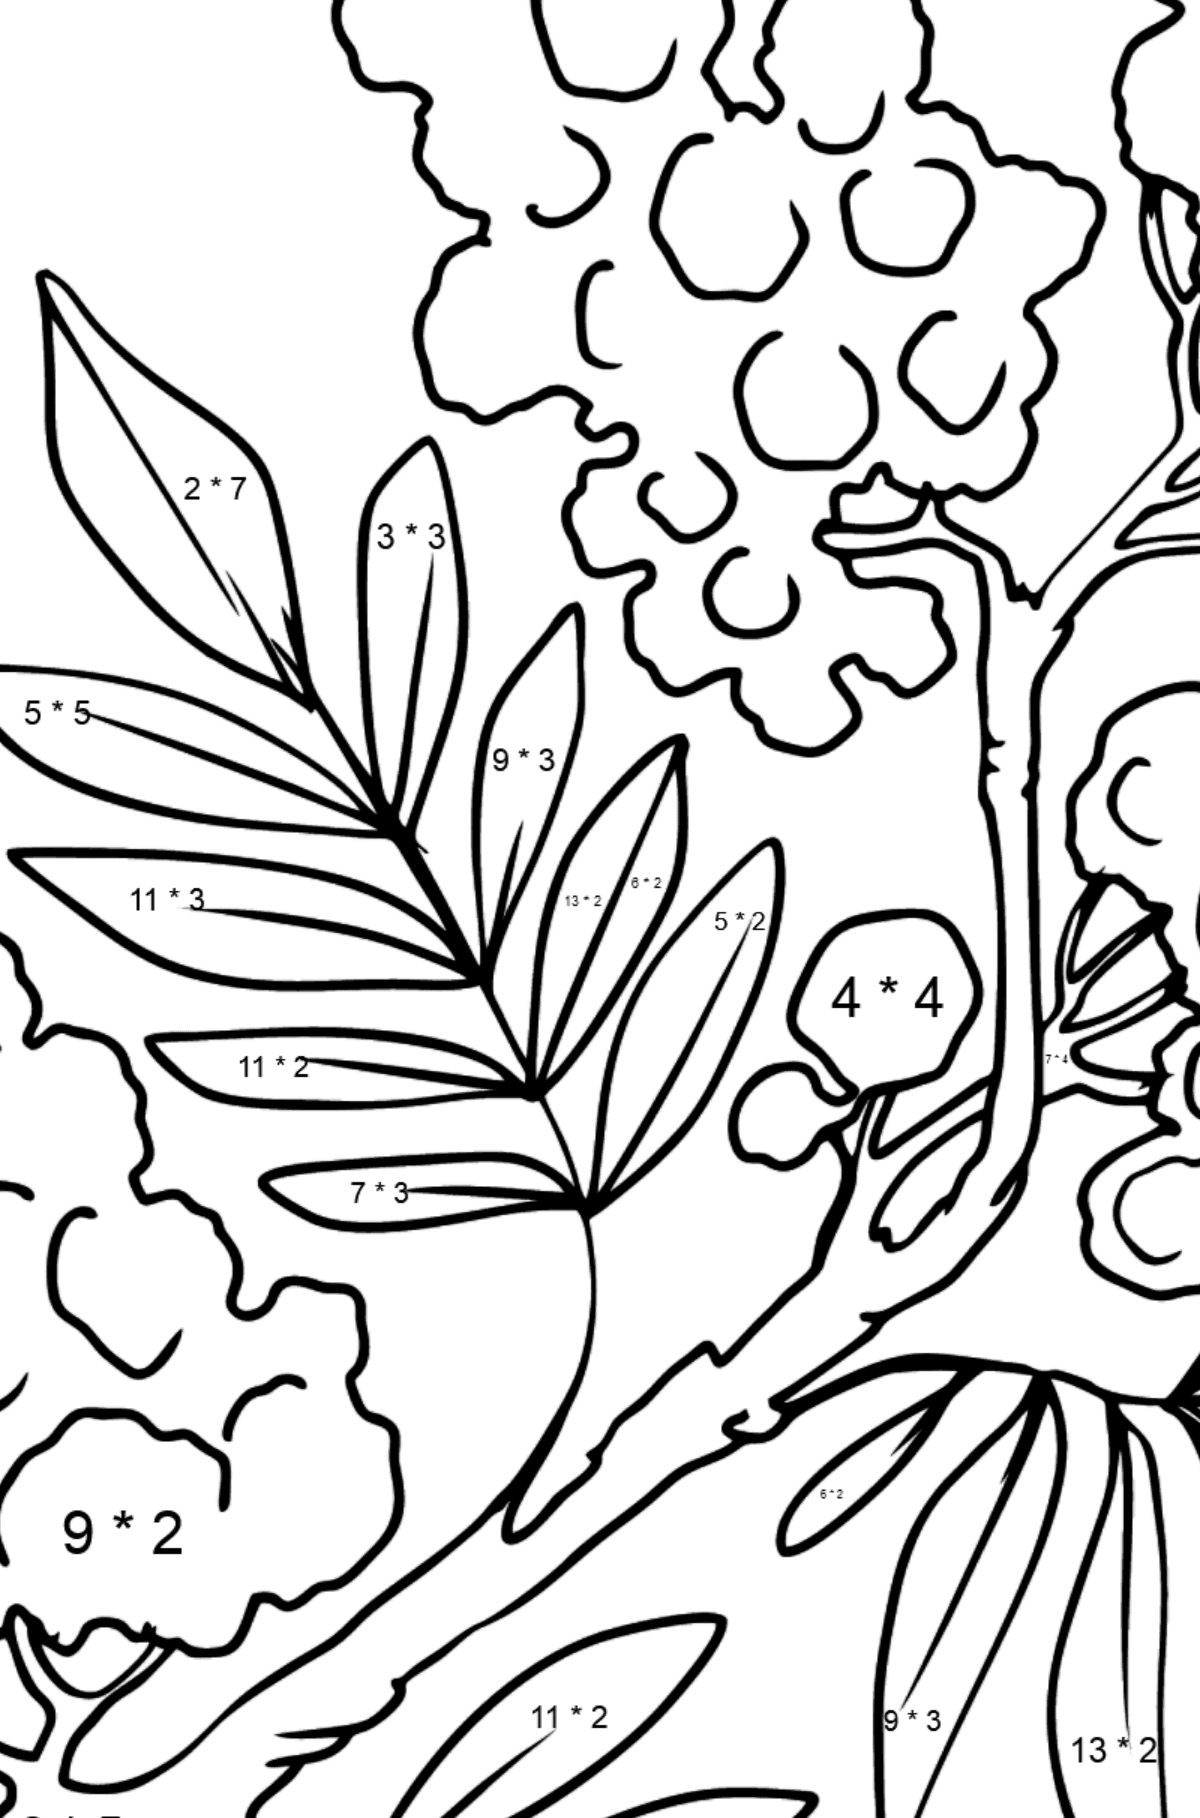 Flower Coloring Page - Mimosa - Math Coloring - Multiplication for Kids